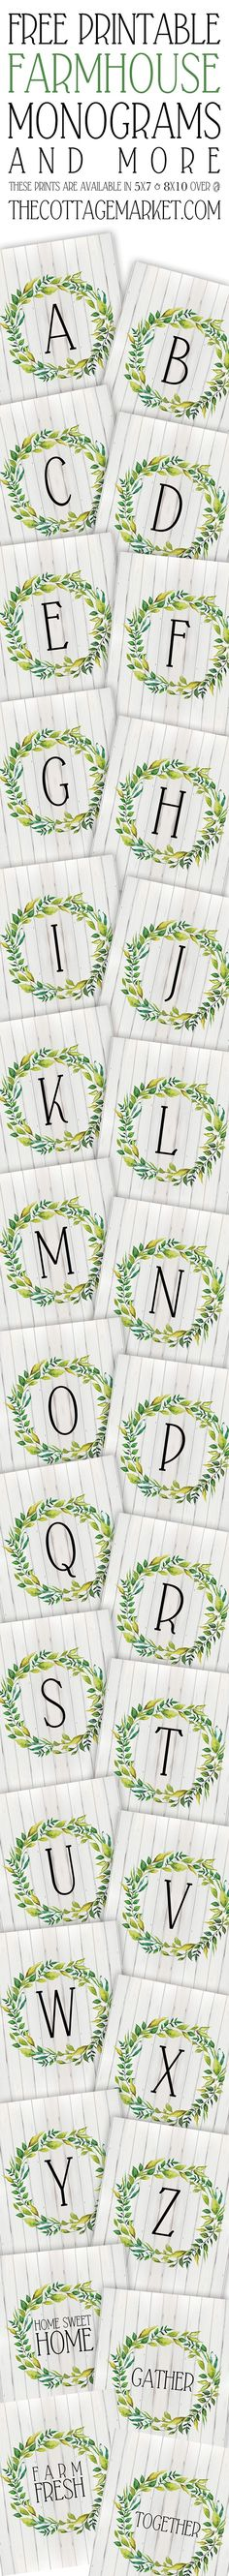 Free Printable Farmhouse Monograms and More